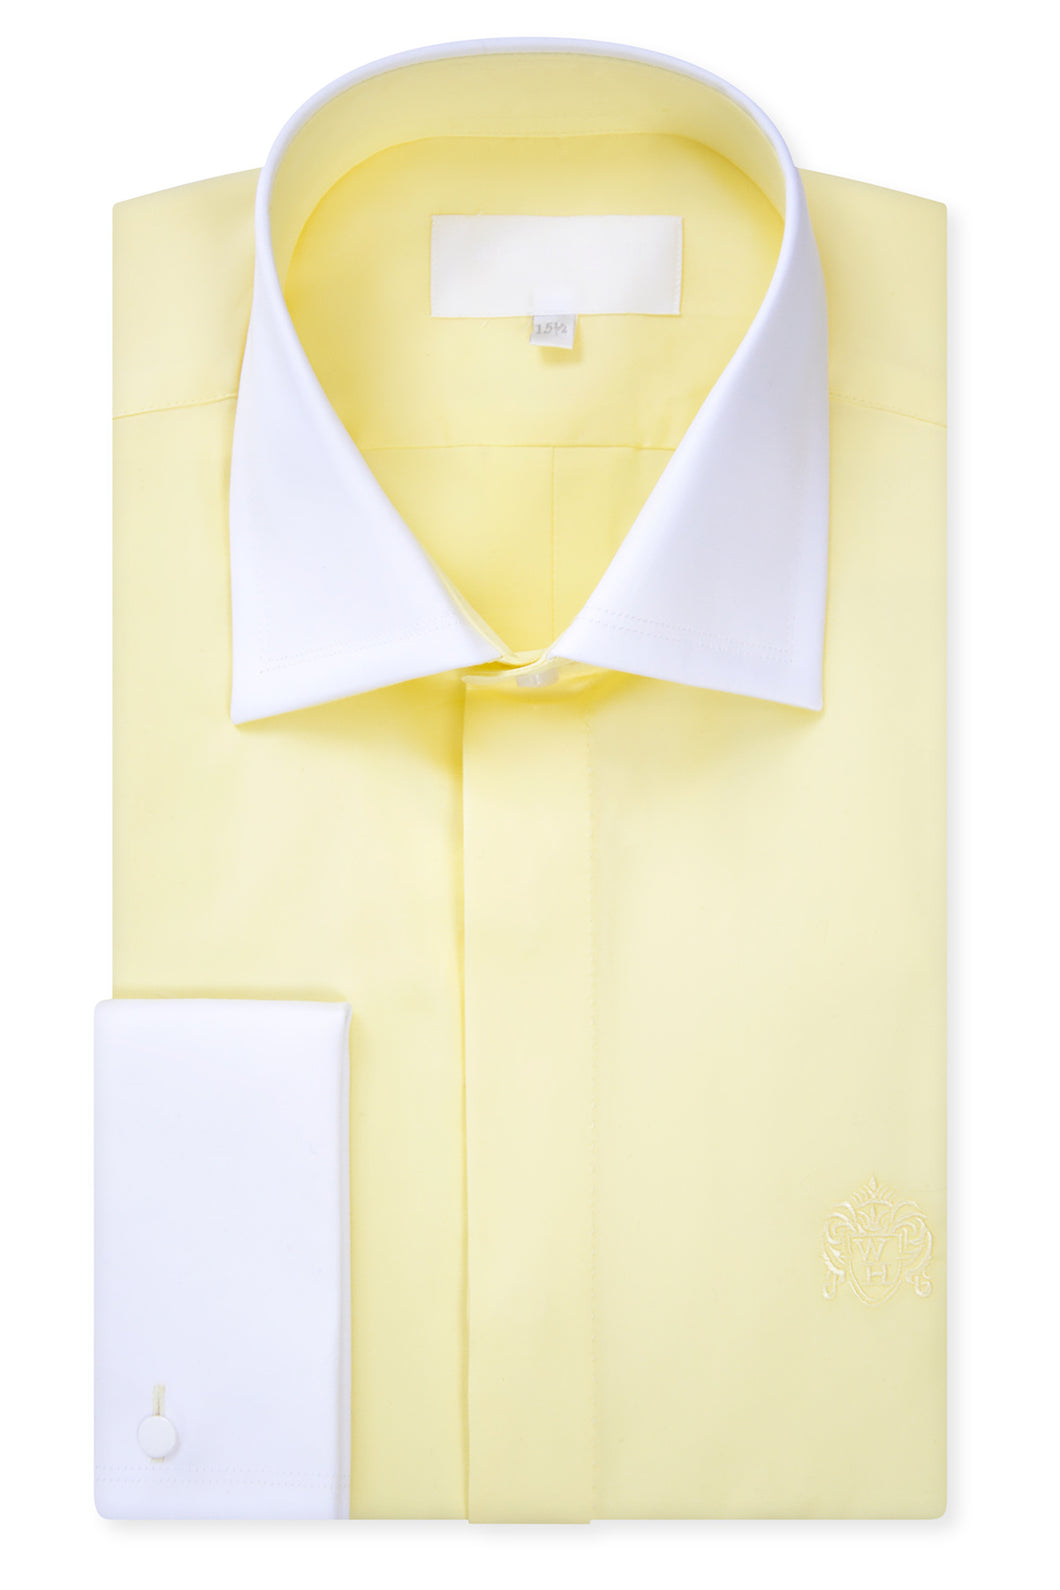 Lemon Yellow Cutaway Collar Shirt